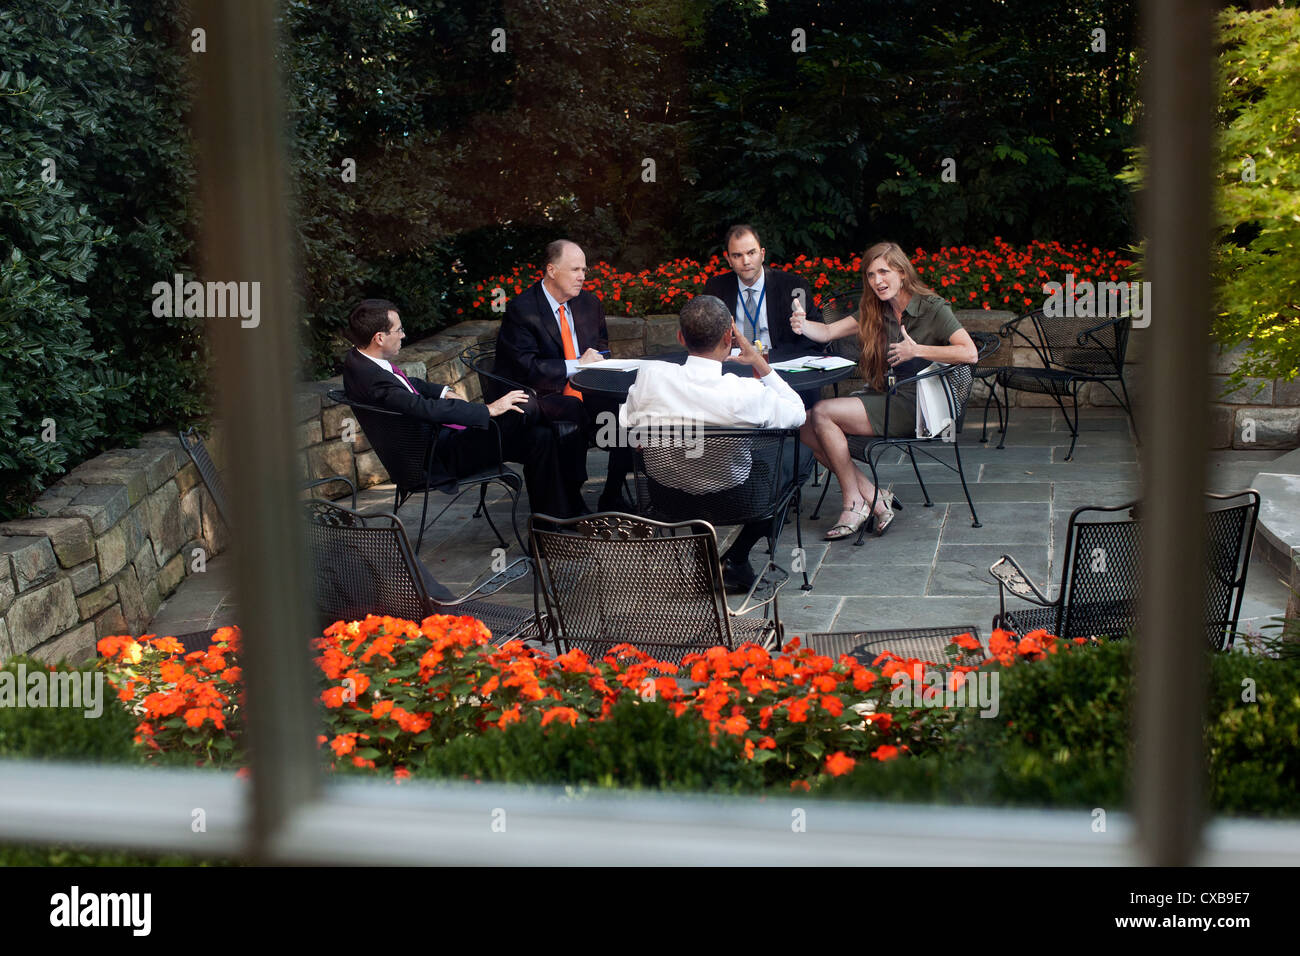 US President Barack Obama meets with advisors September 14, 2011 on the patio outside the Oval Office. From left - Stock Image